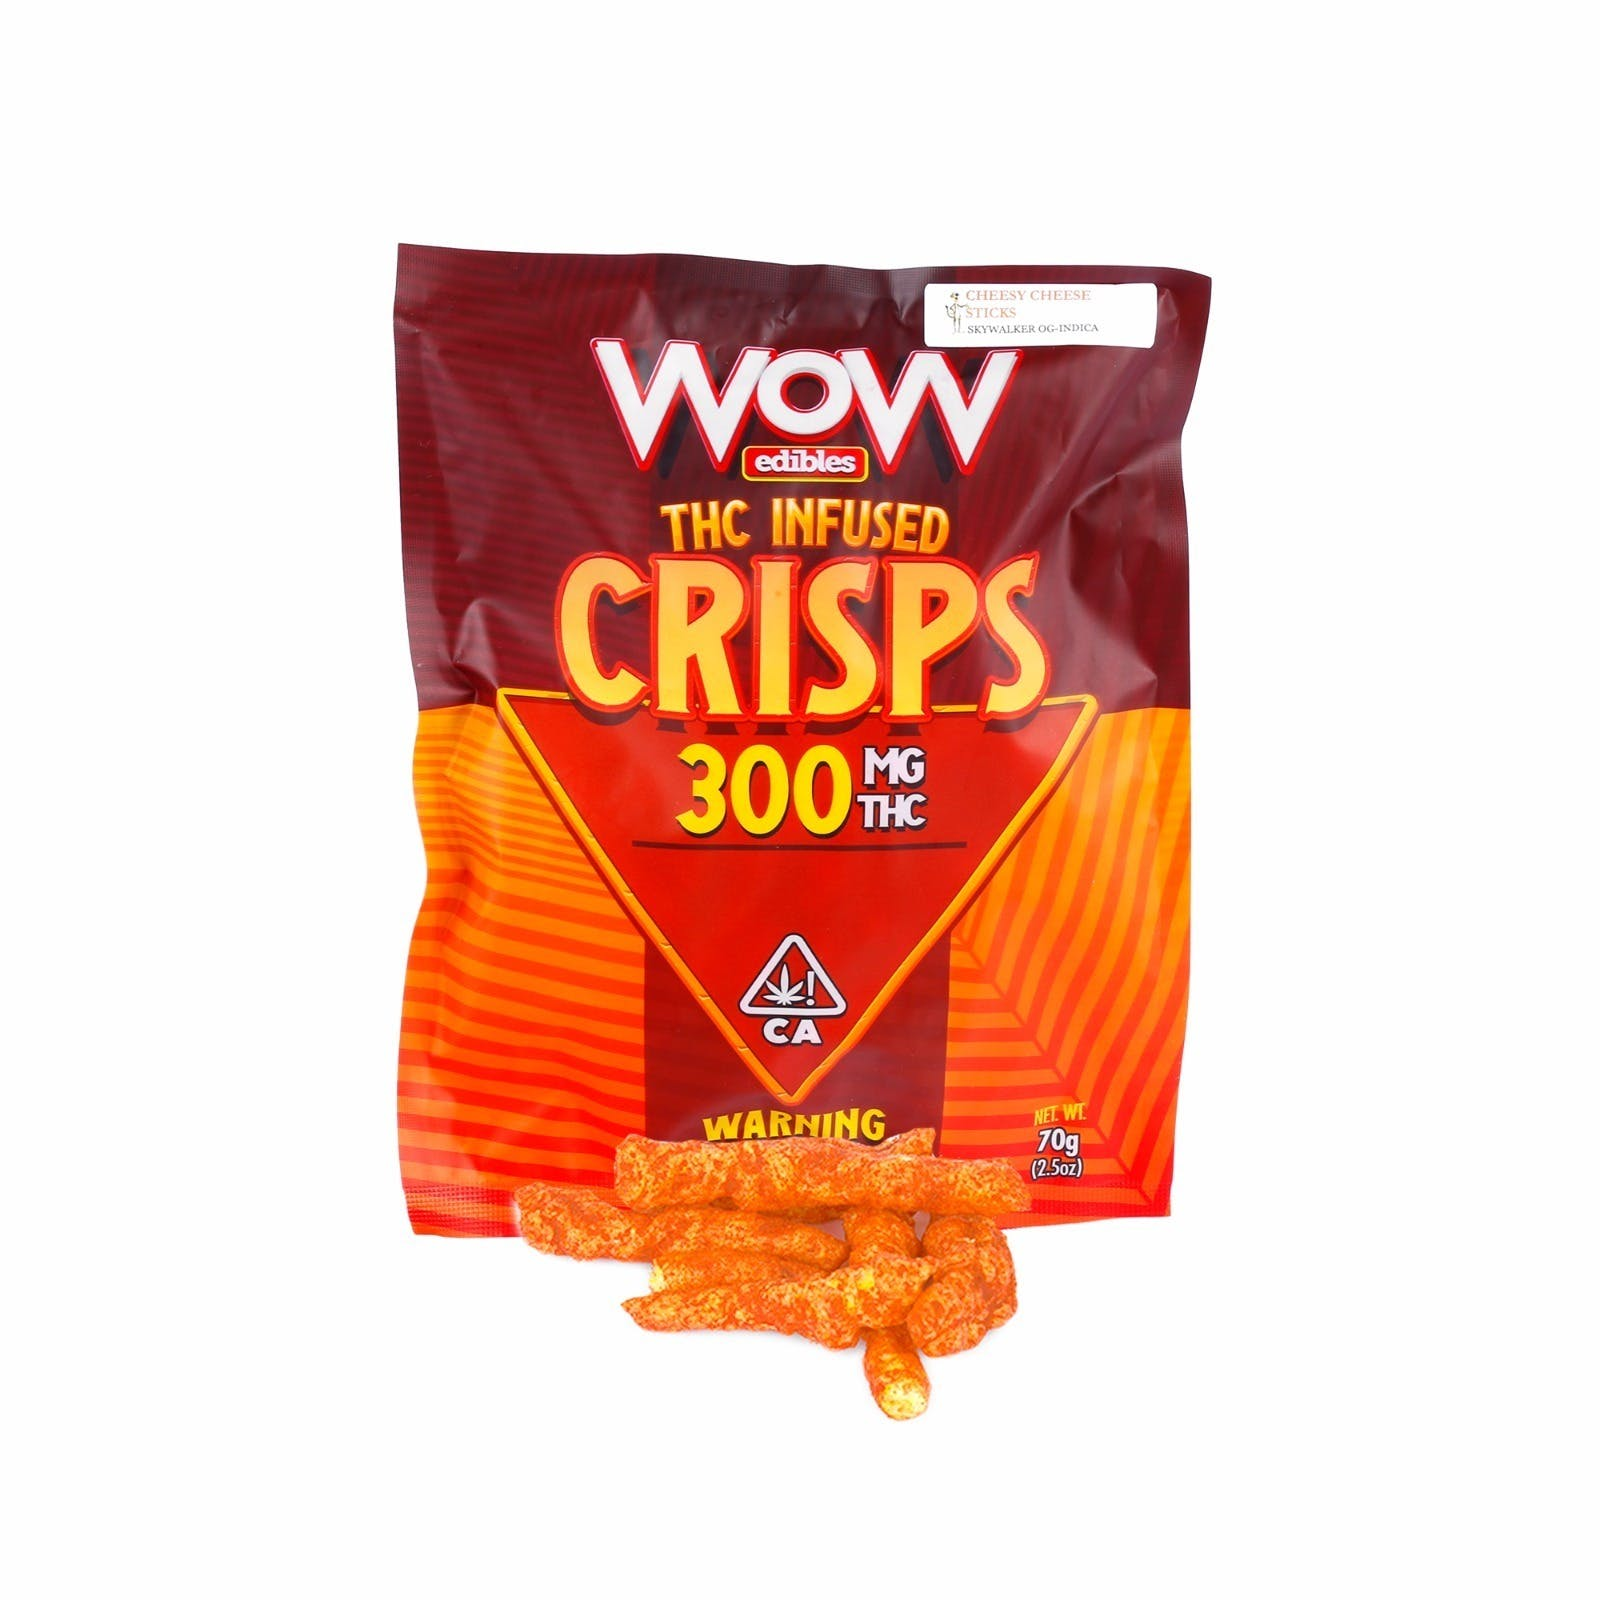 marijuana-dispensaries-temple-collective-in-los-angeles-crisp-chips-cheesy-cheese-sticks-300-mg